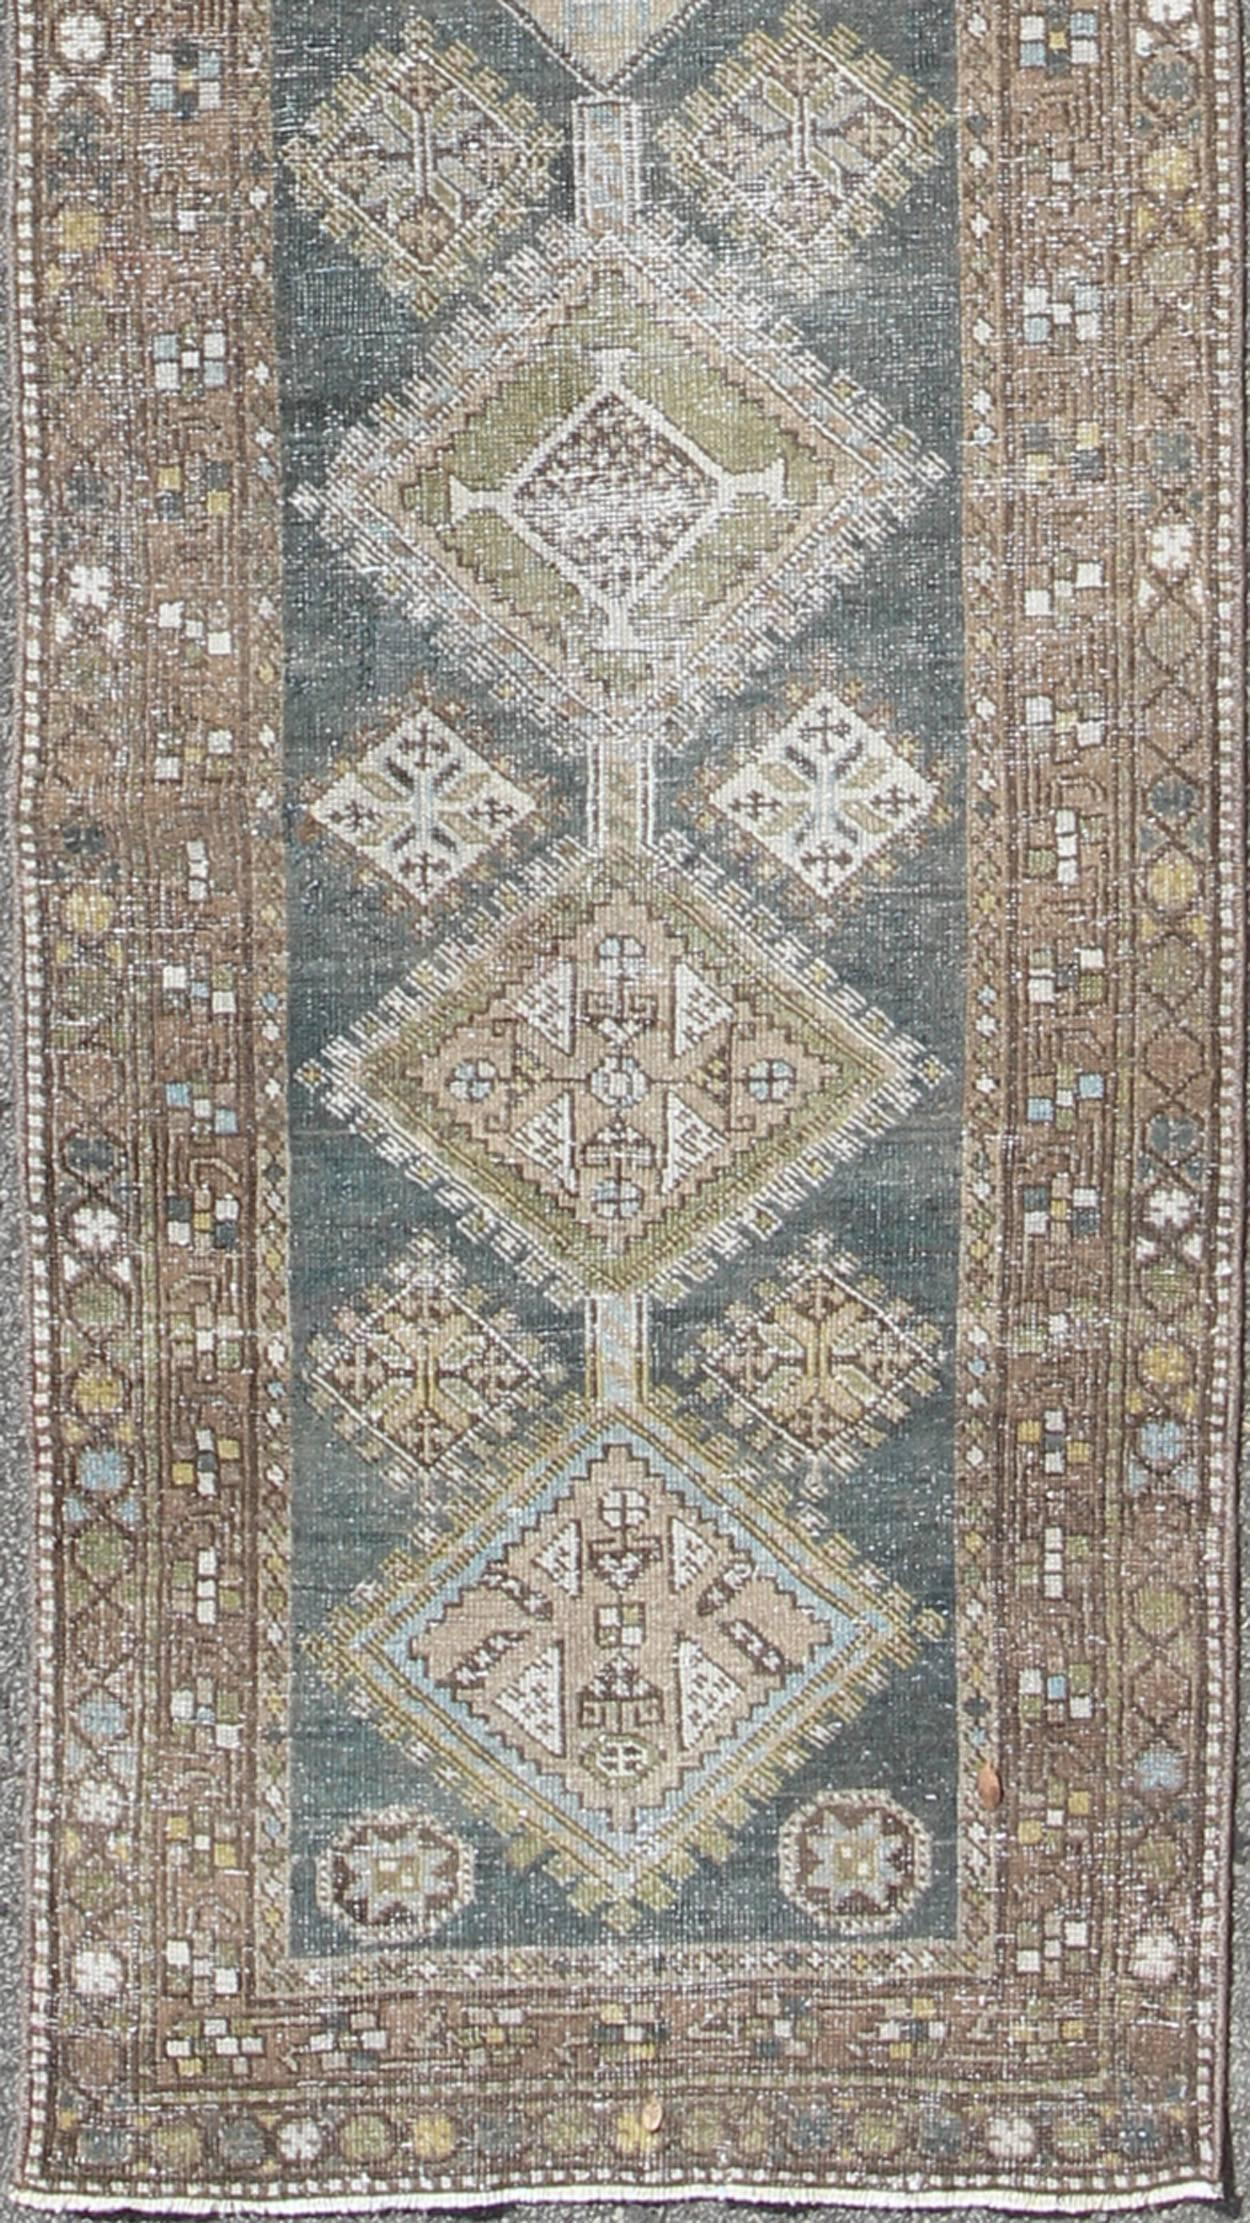 Heriz Antique Persian Rug With Geometric Medallions In Steal Blue, Brown